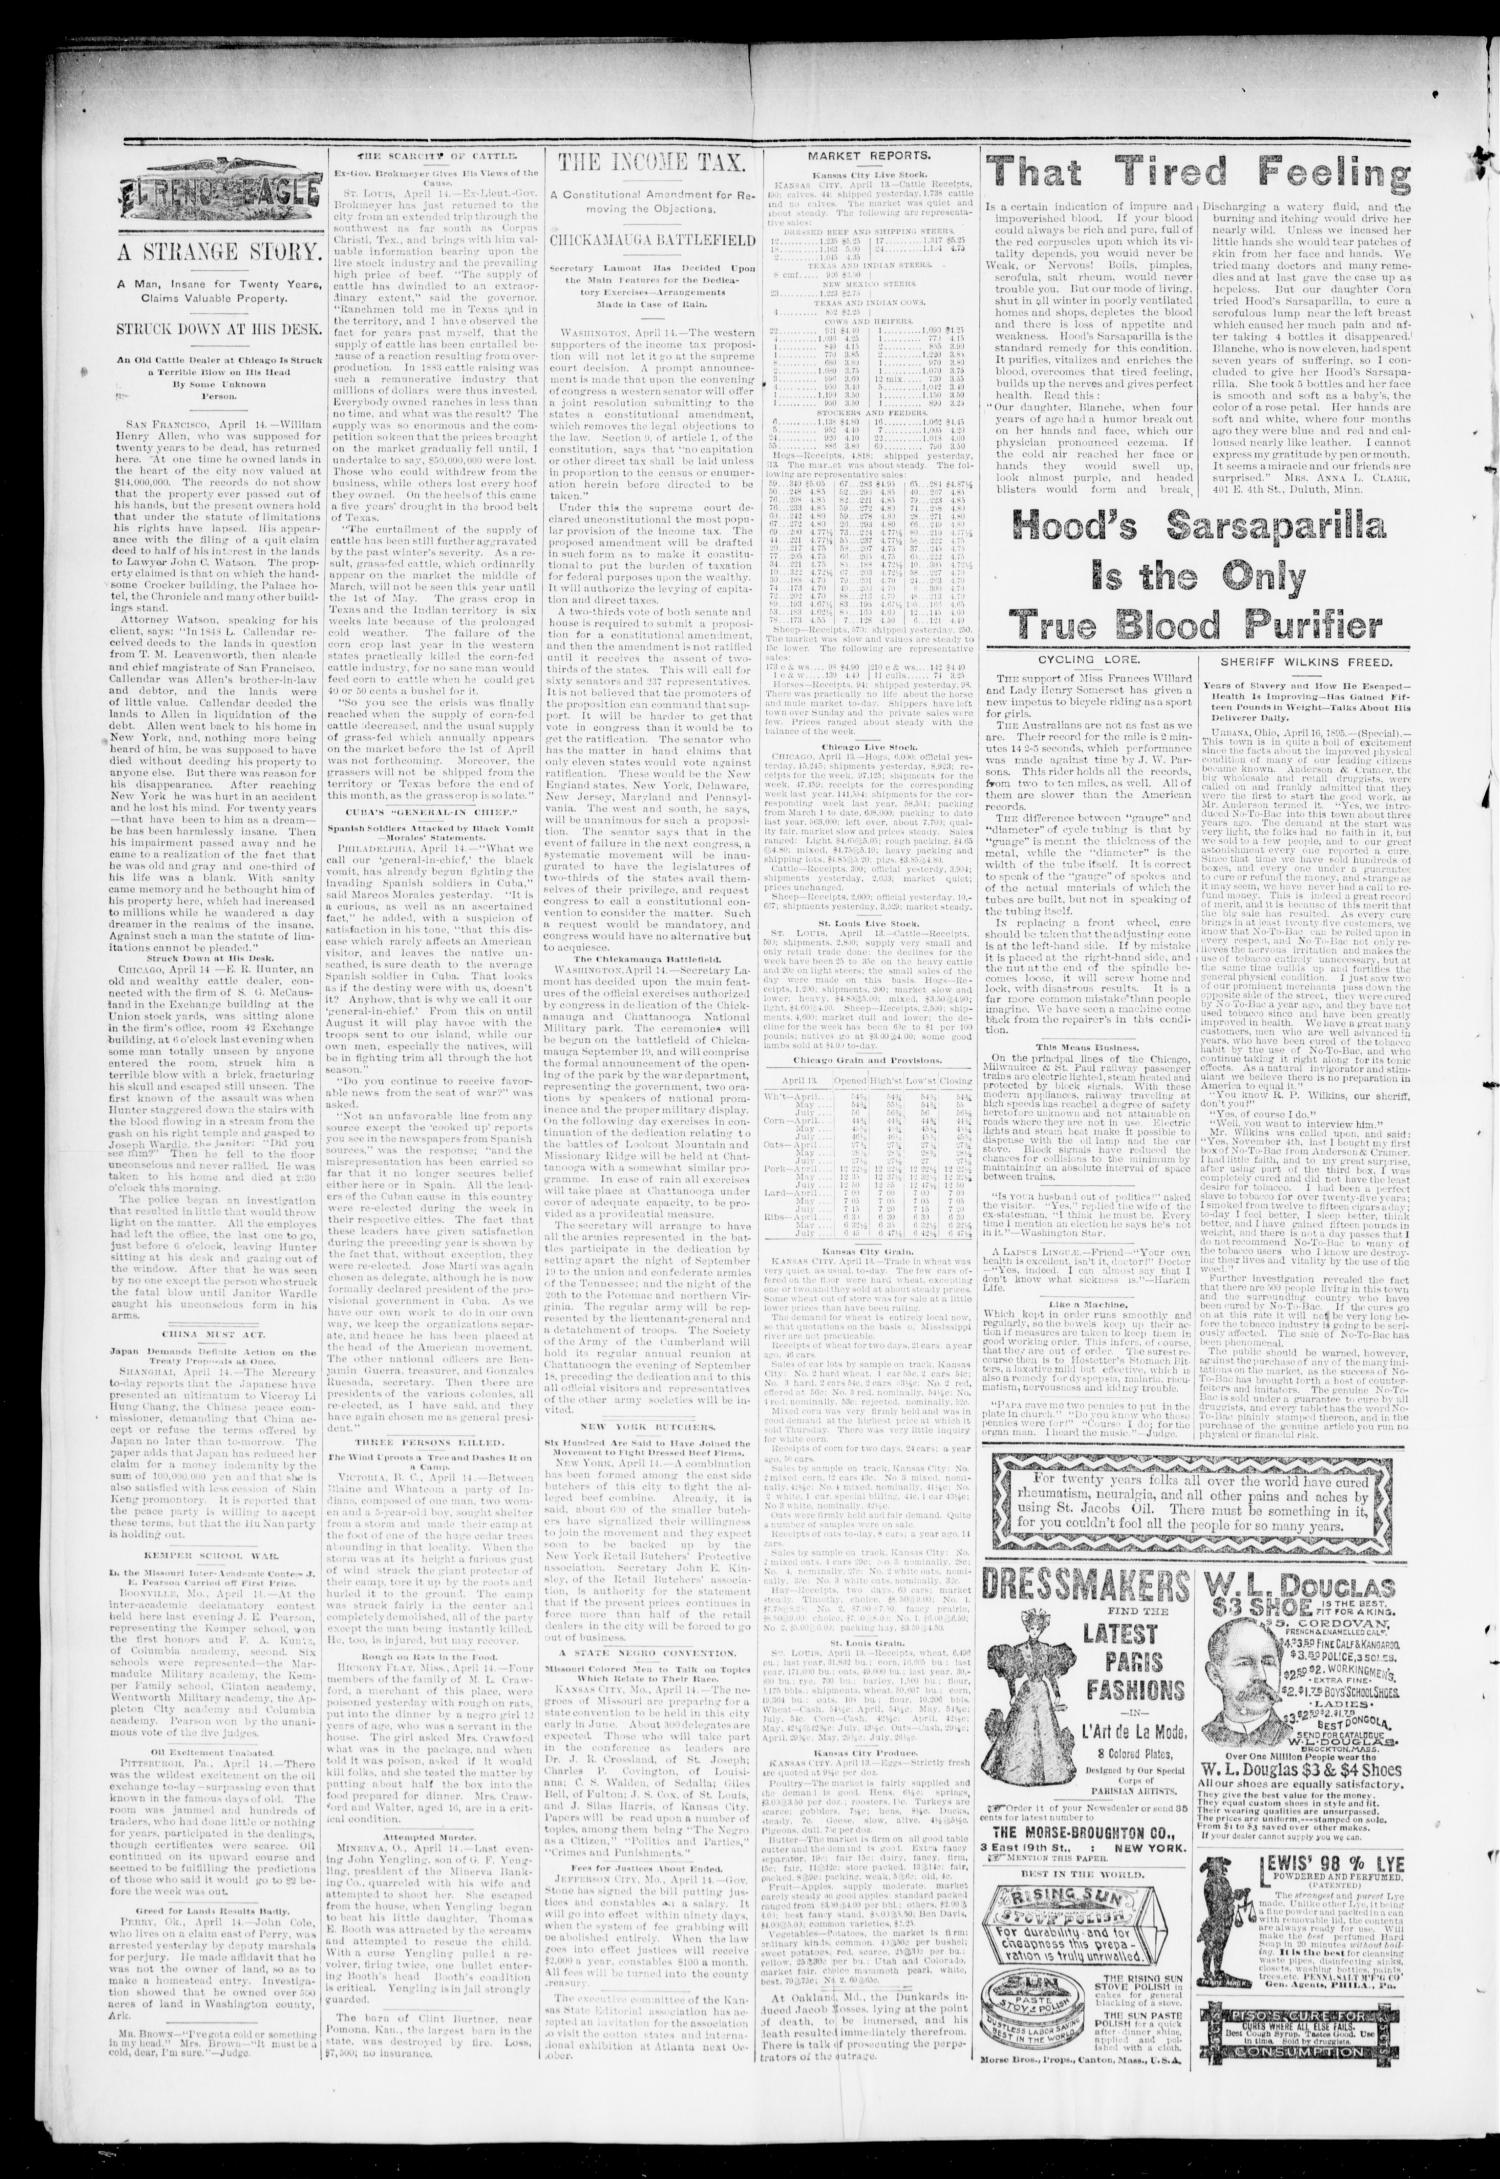 El Reno Daily Eagle. (El Reno, Okla.), Vol. 1, No. 167, Ed. 1 Tuesday, April 16, 1895                                                                                                      [Sequence #]: 2 of 4